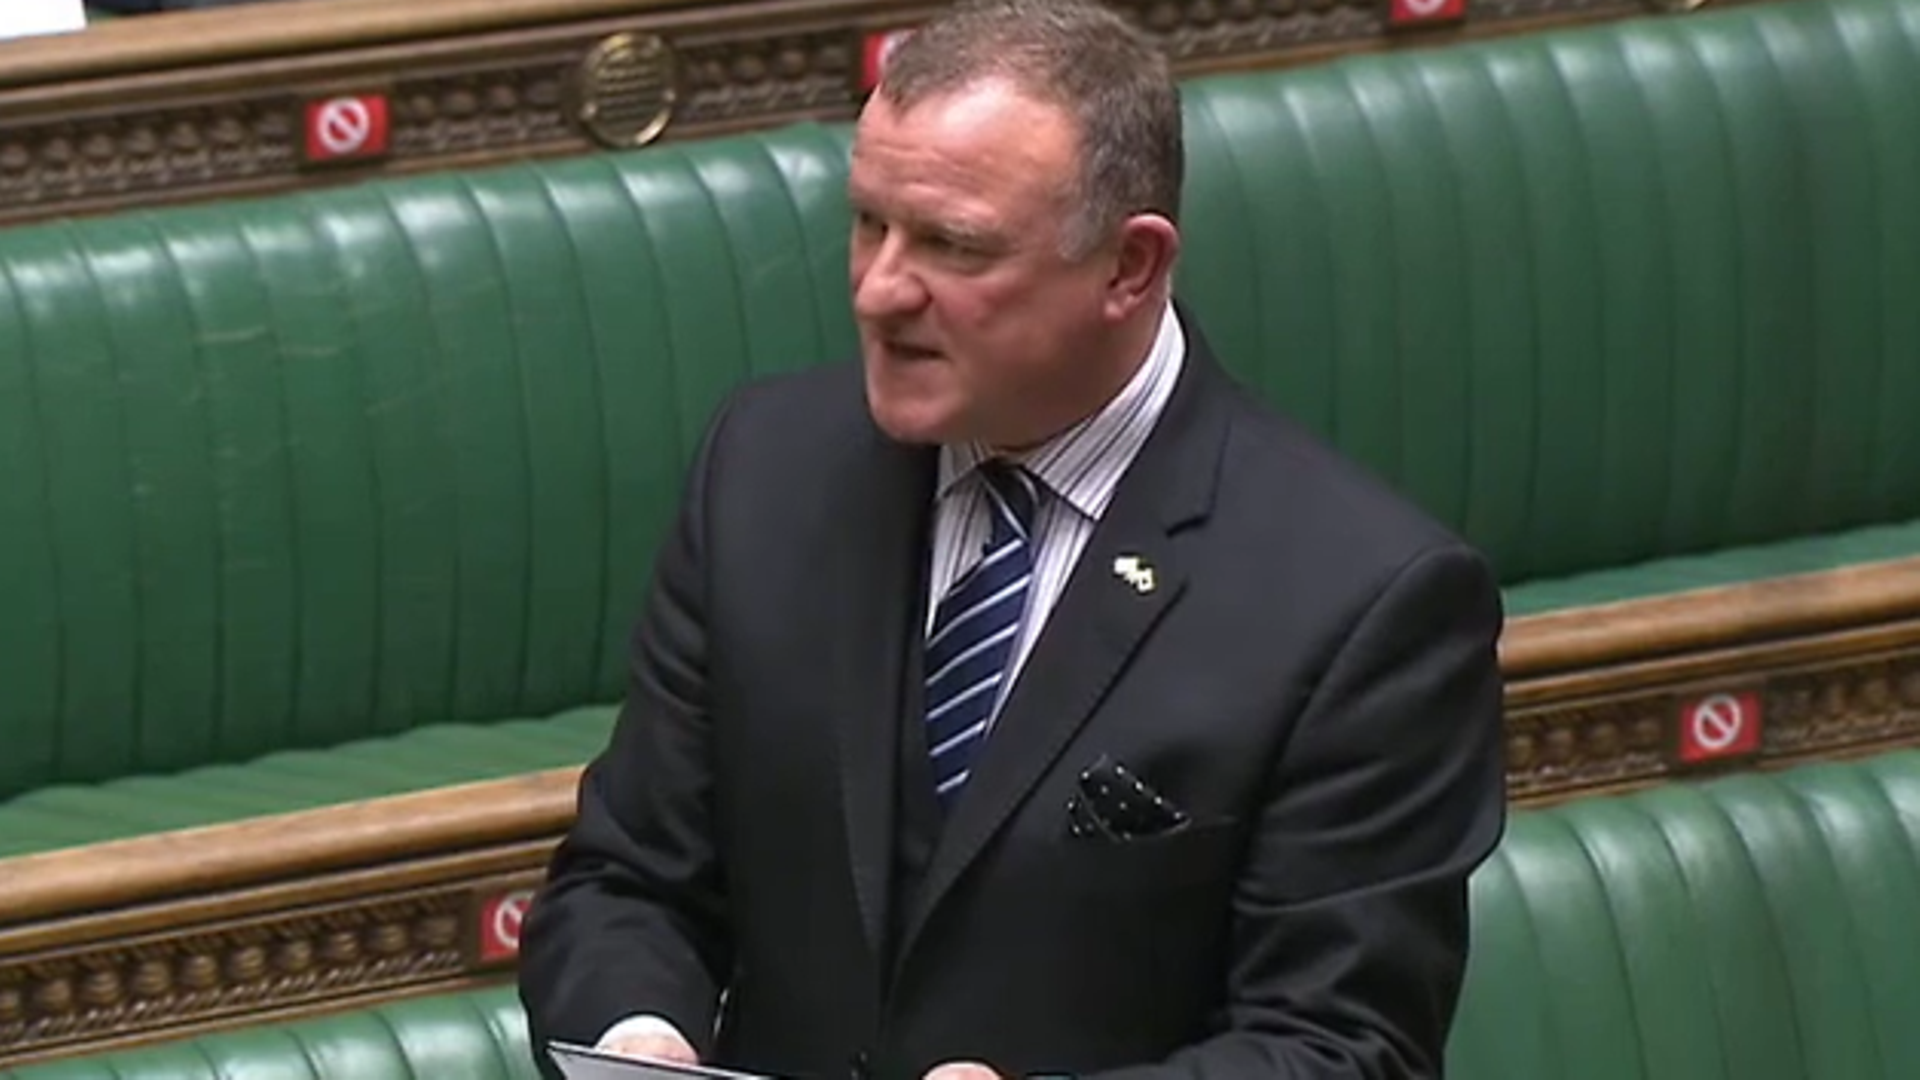 SNP MP Drew Hendry in the House of Commons - Credit: Parliament Live